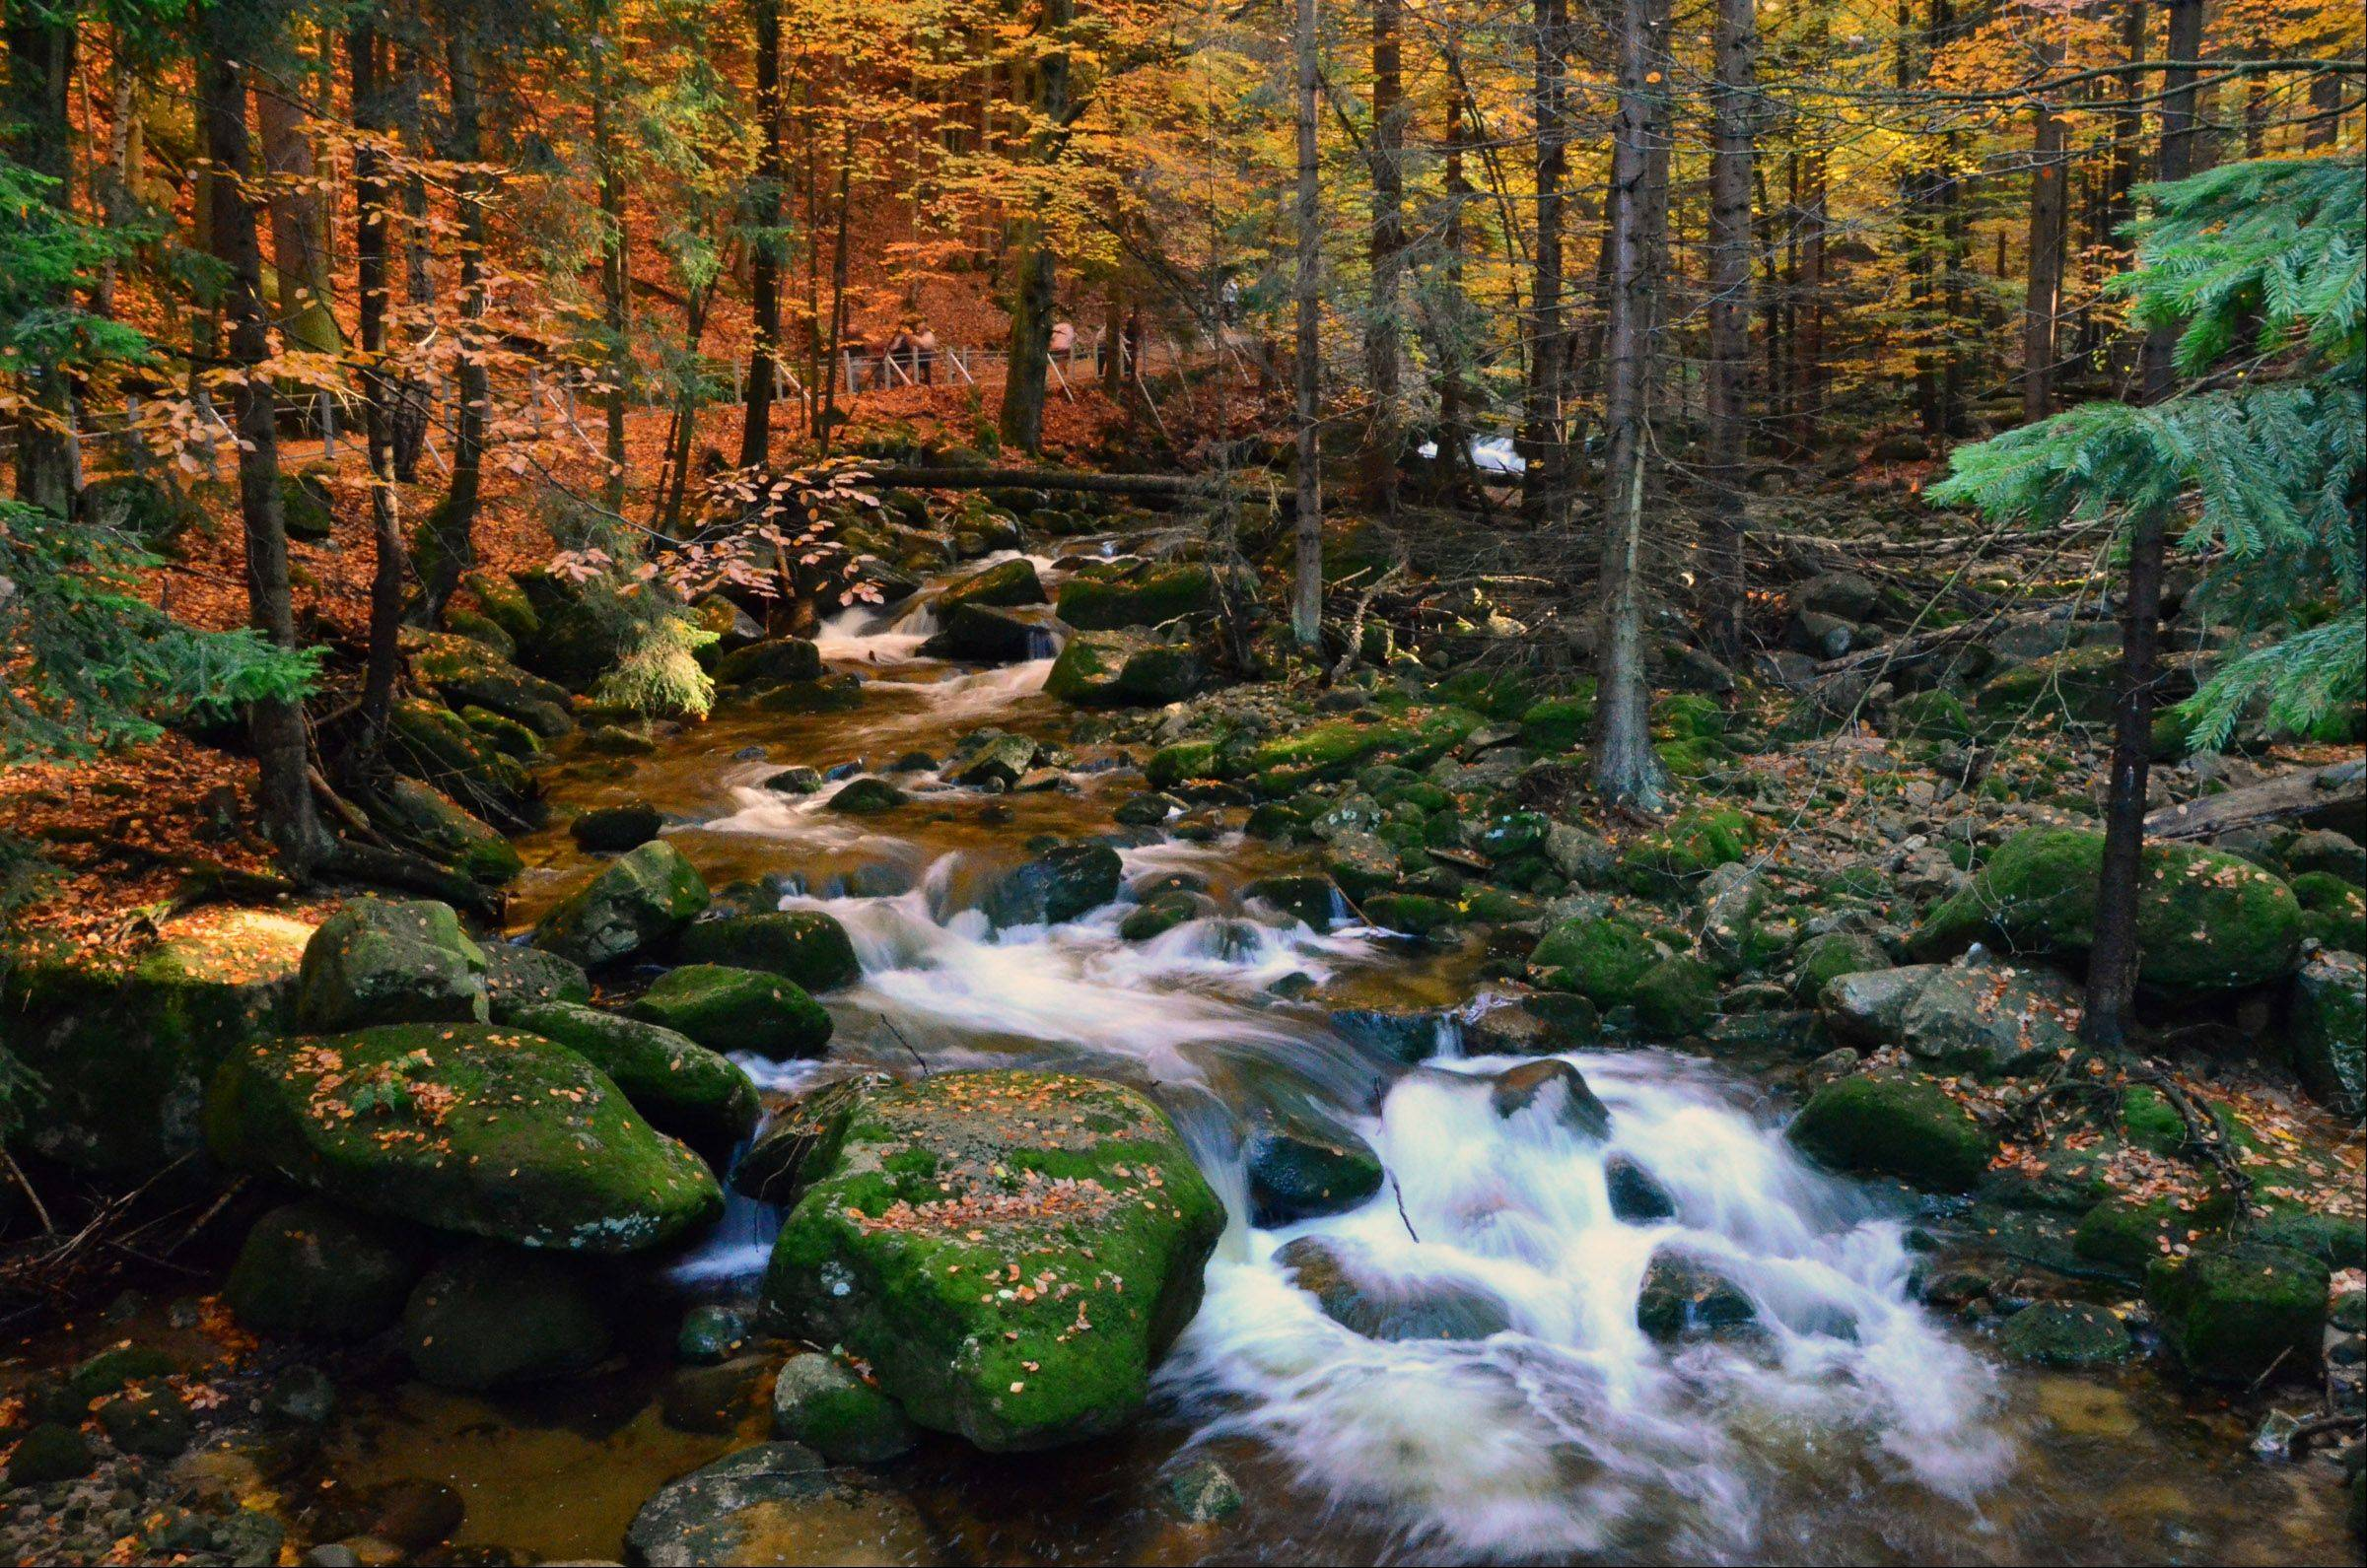 Water flows along a river at the Karkonowski National Park in Poland last week.